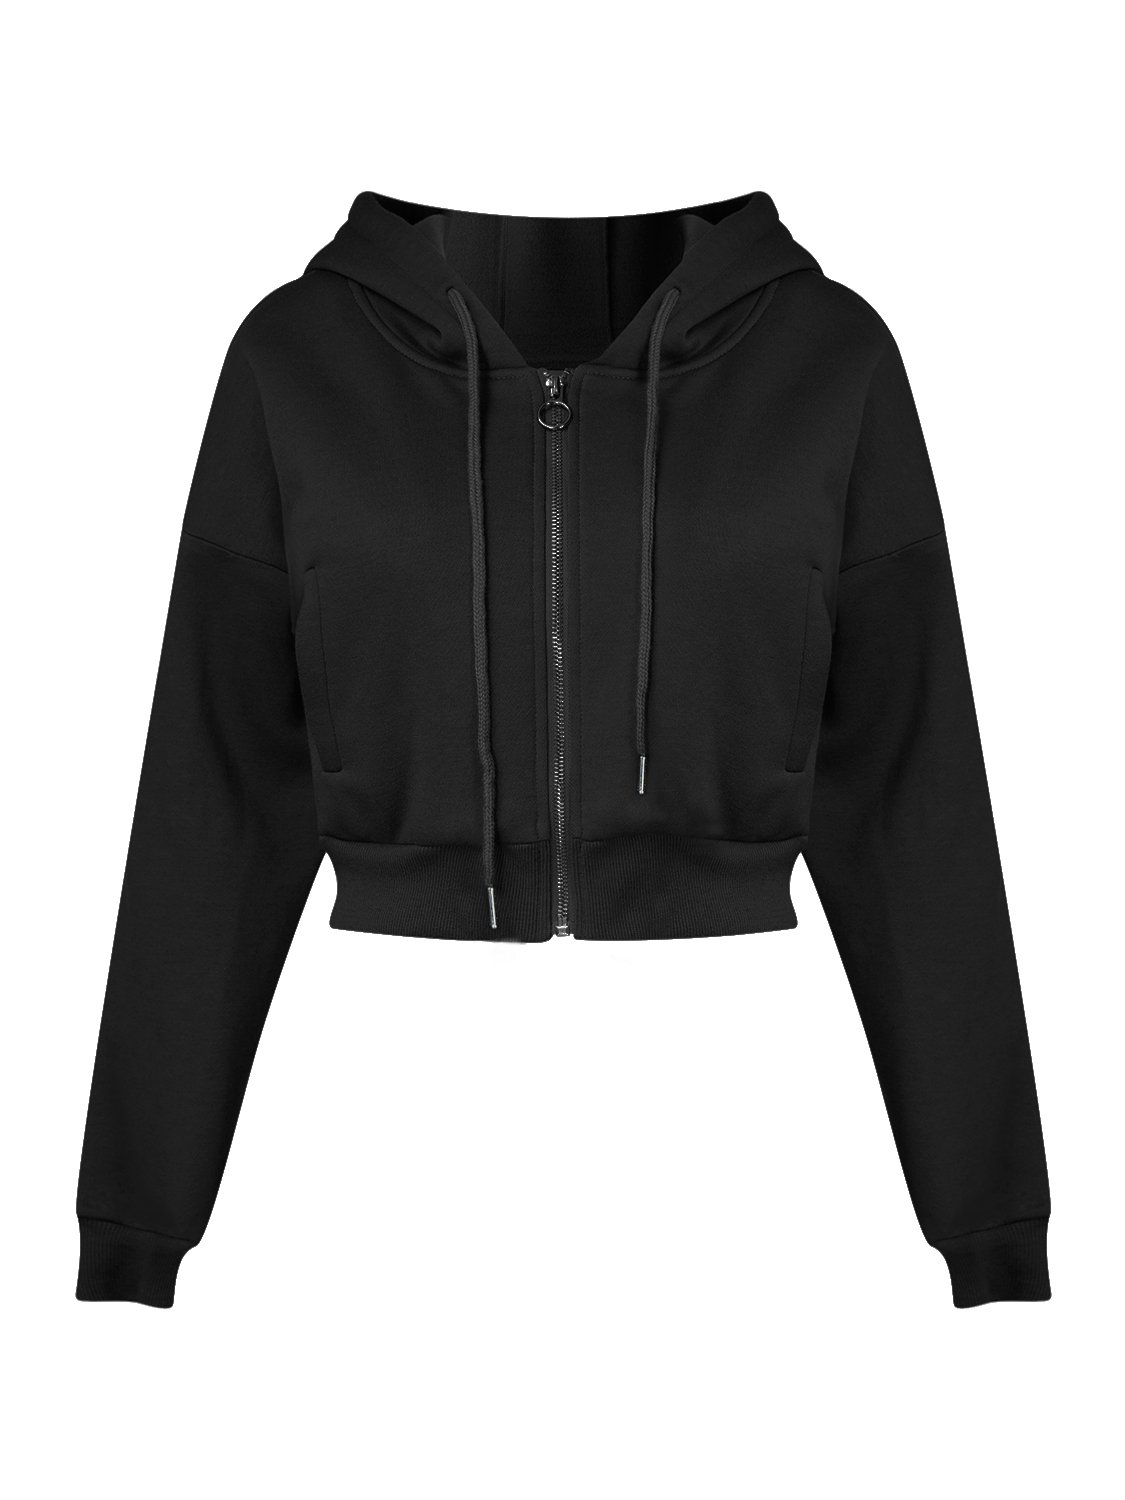 Joeoy Women's Black Drawstring Zip up Fleece Hoodie Coat Jacket Crop Top-M